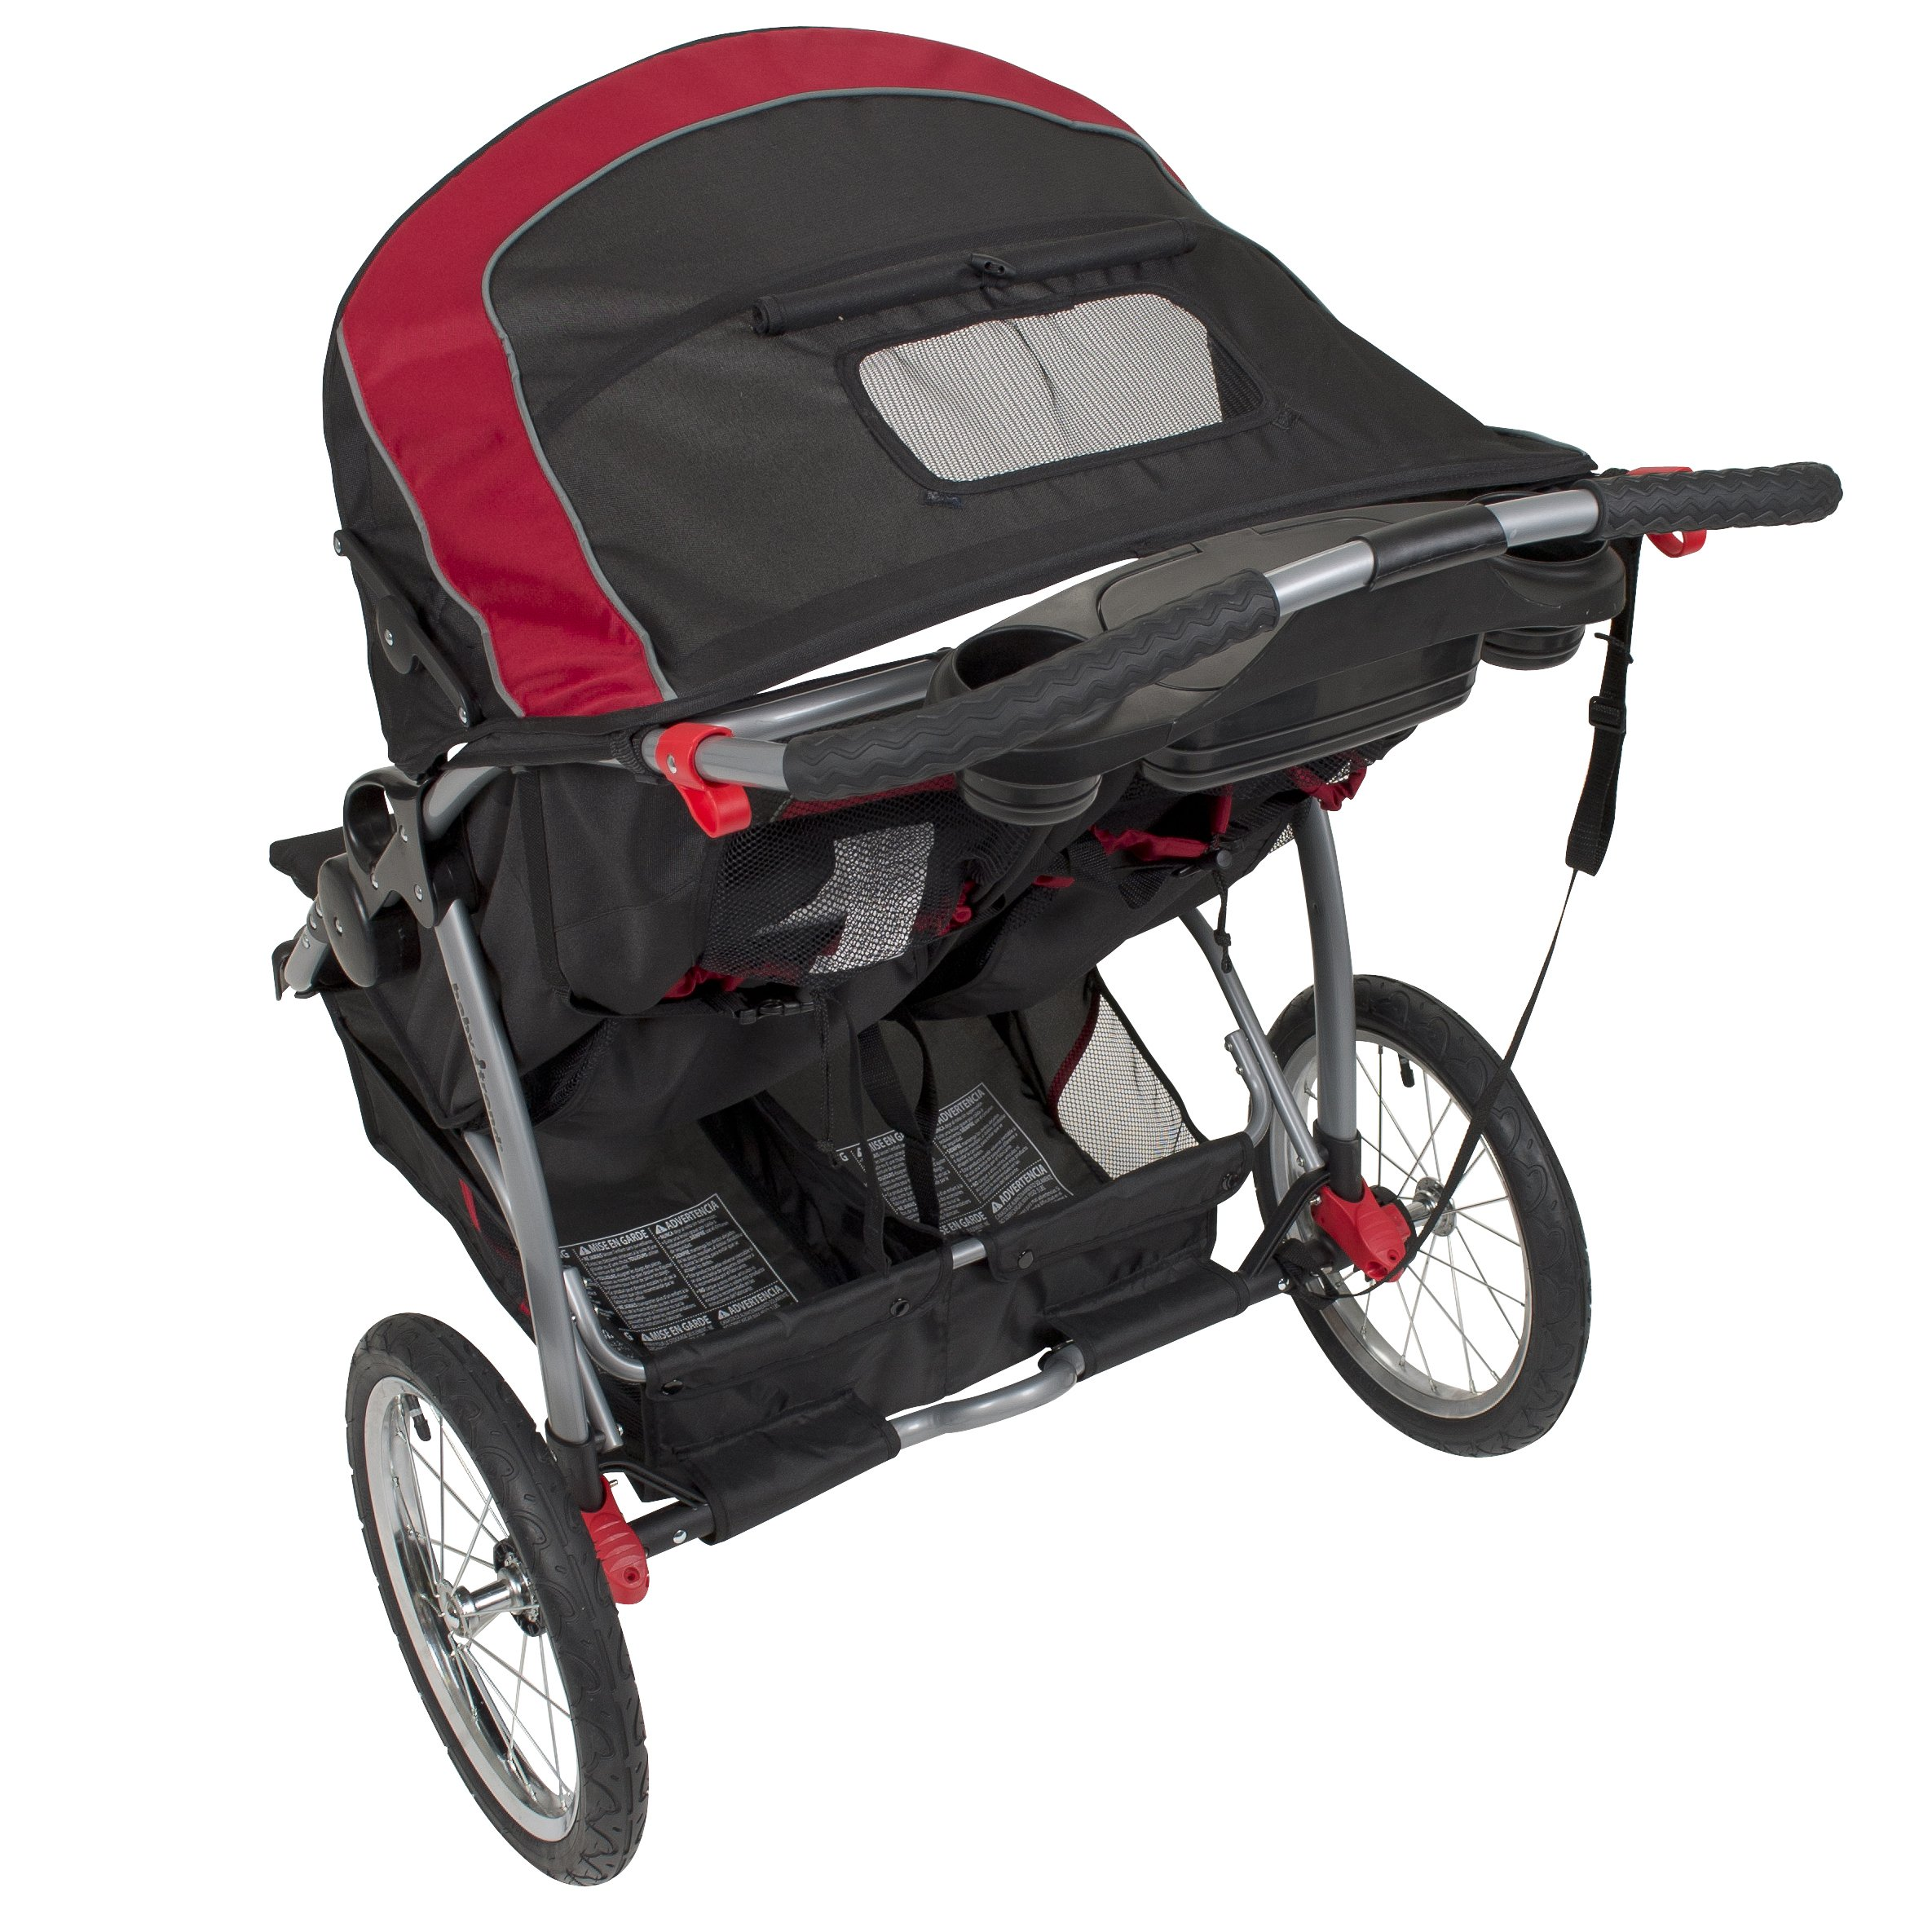 Baby Trend Expedition Double Jogger, Centennial by Baby Trend (Image #3)